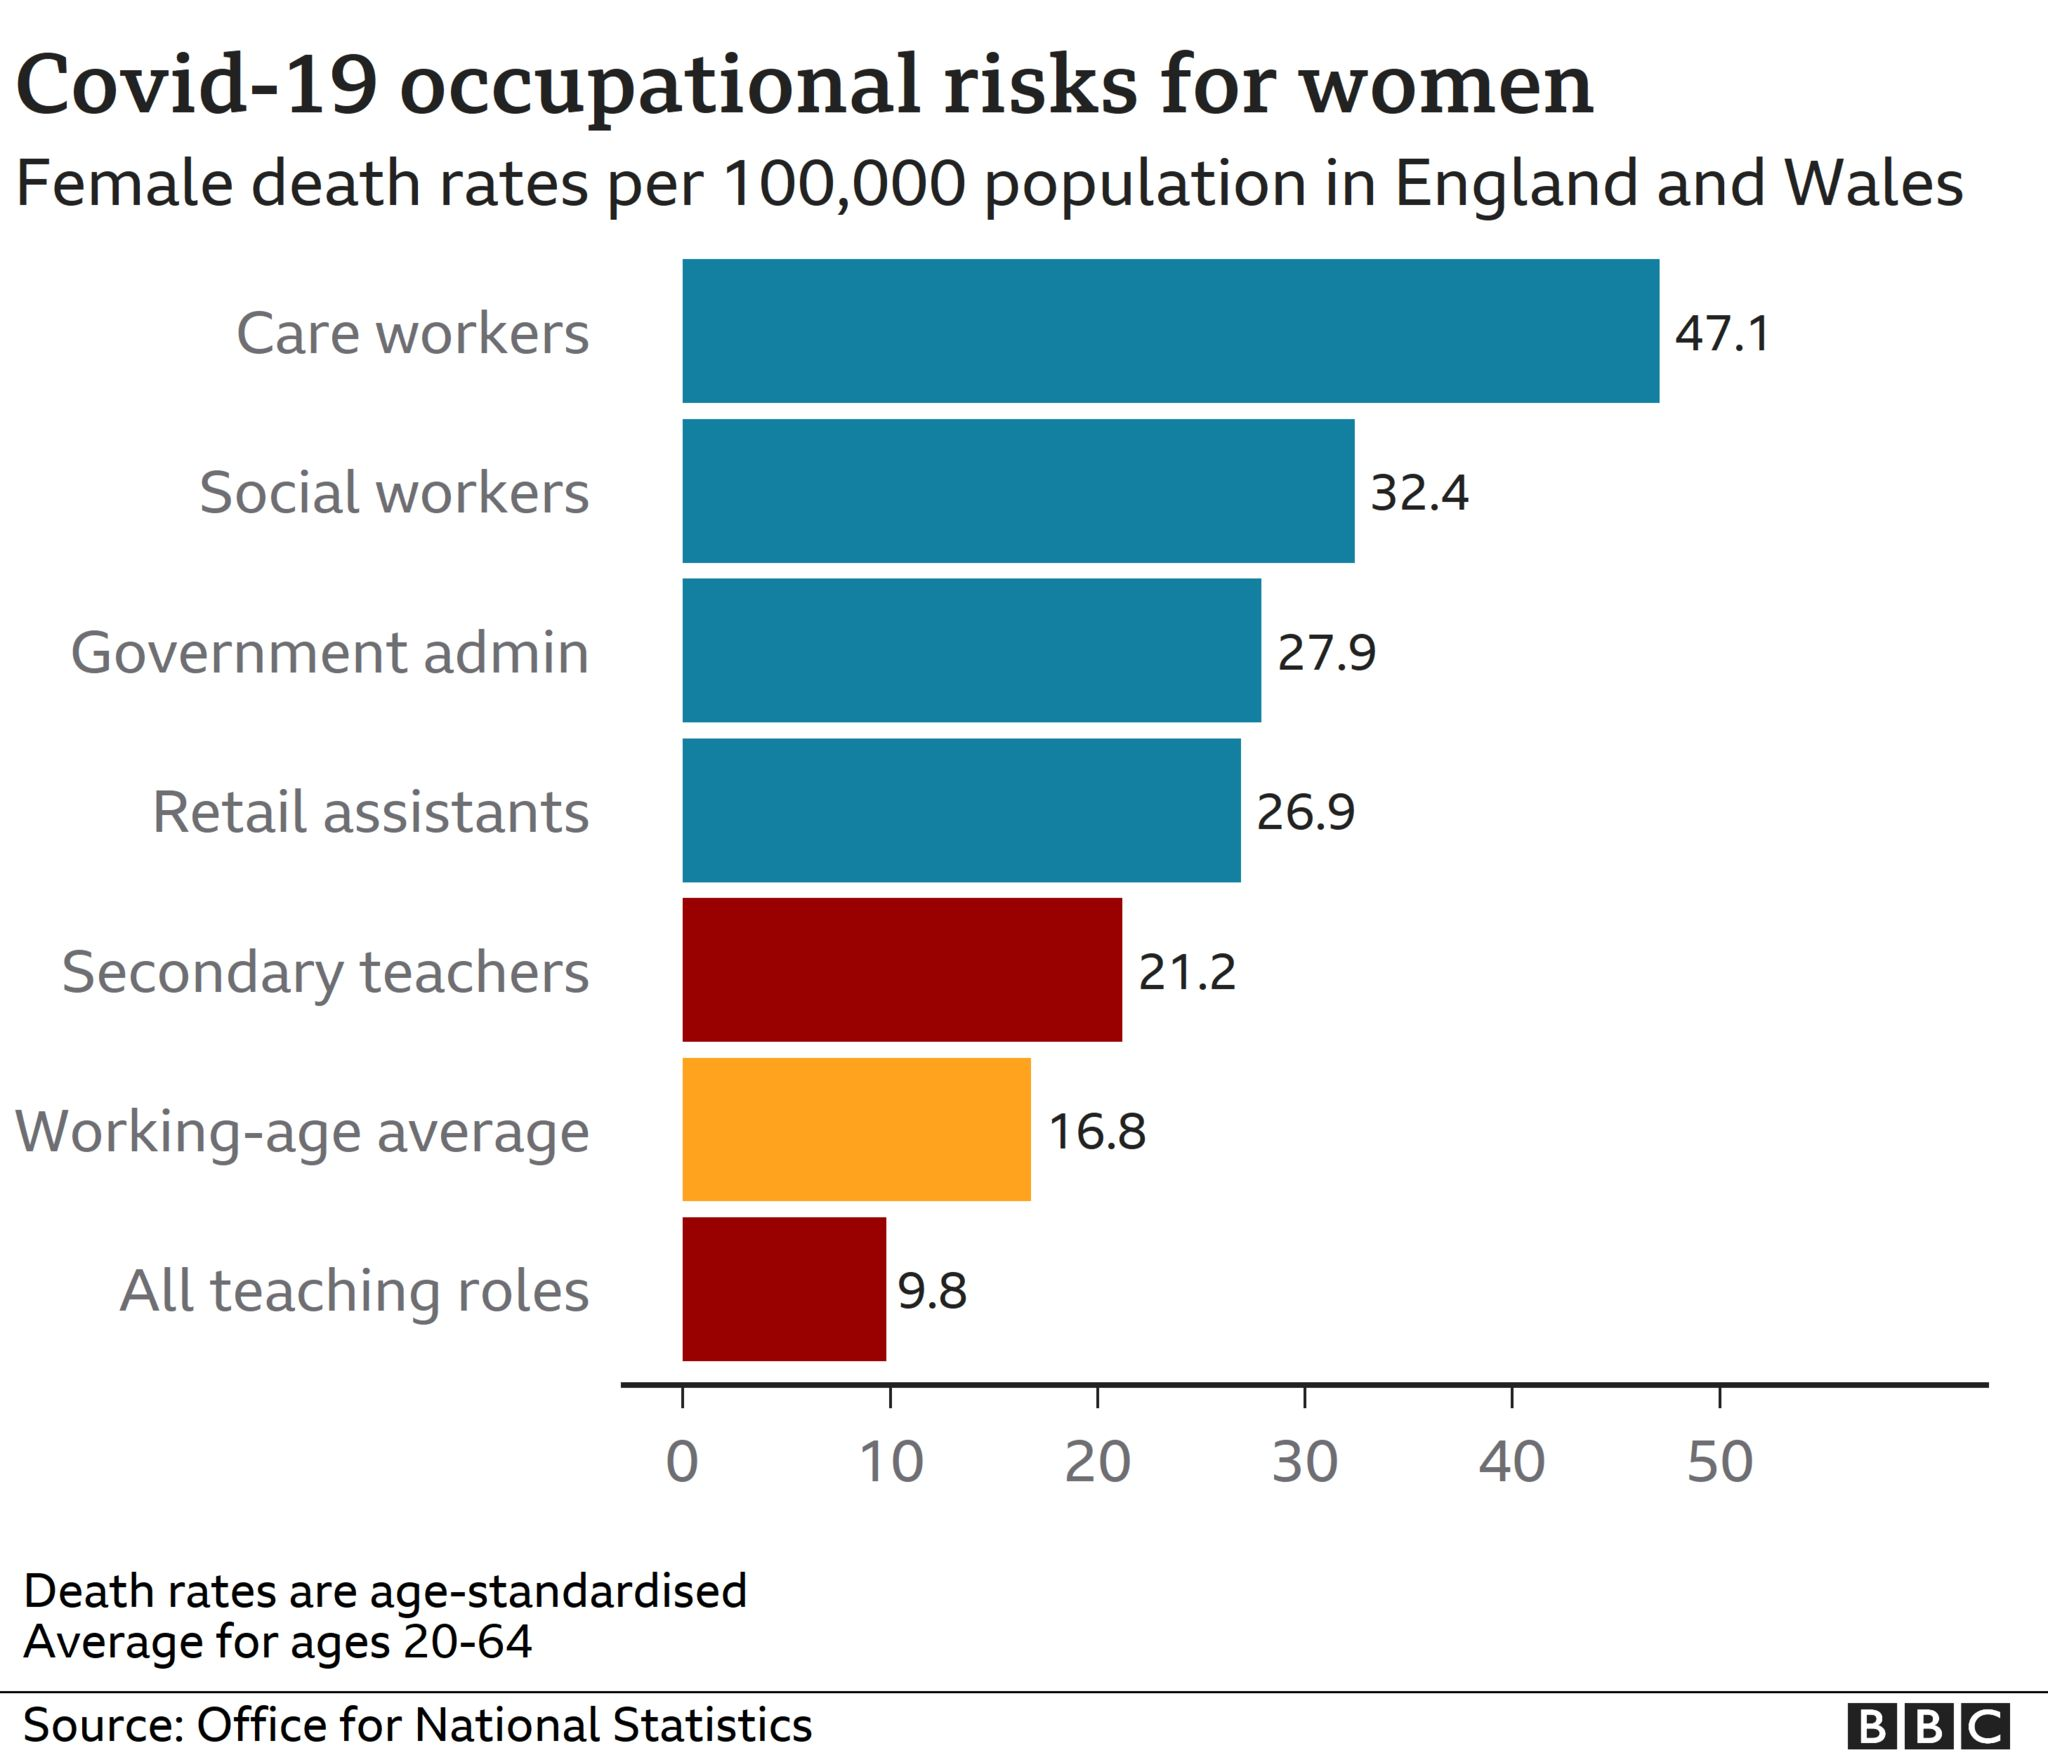 Chart showing Covid occupational risks for women